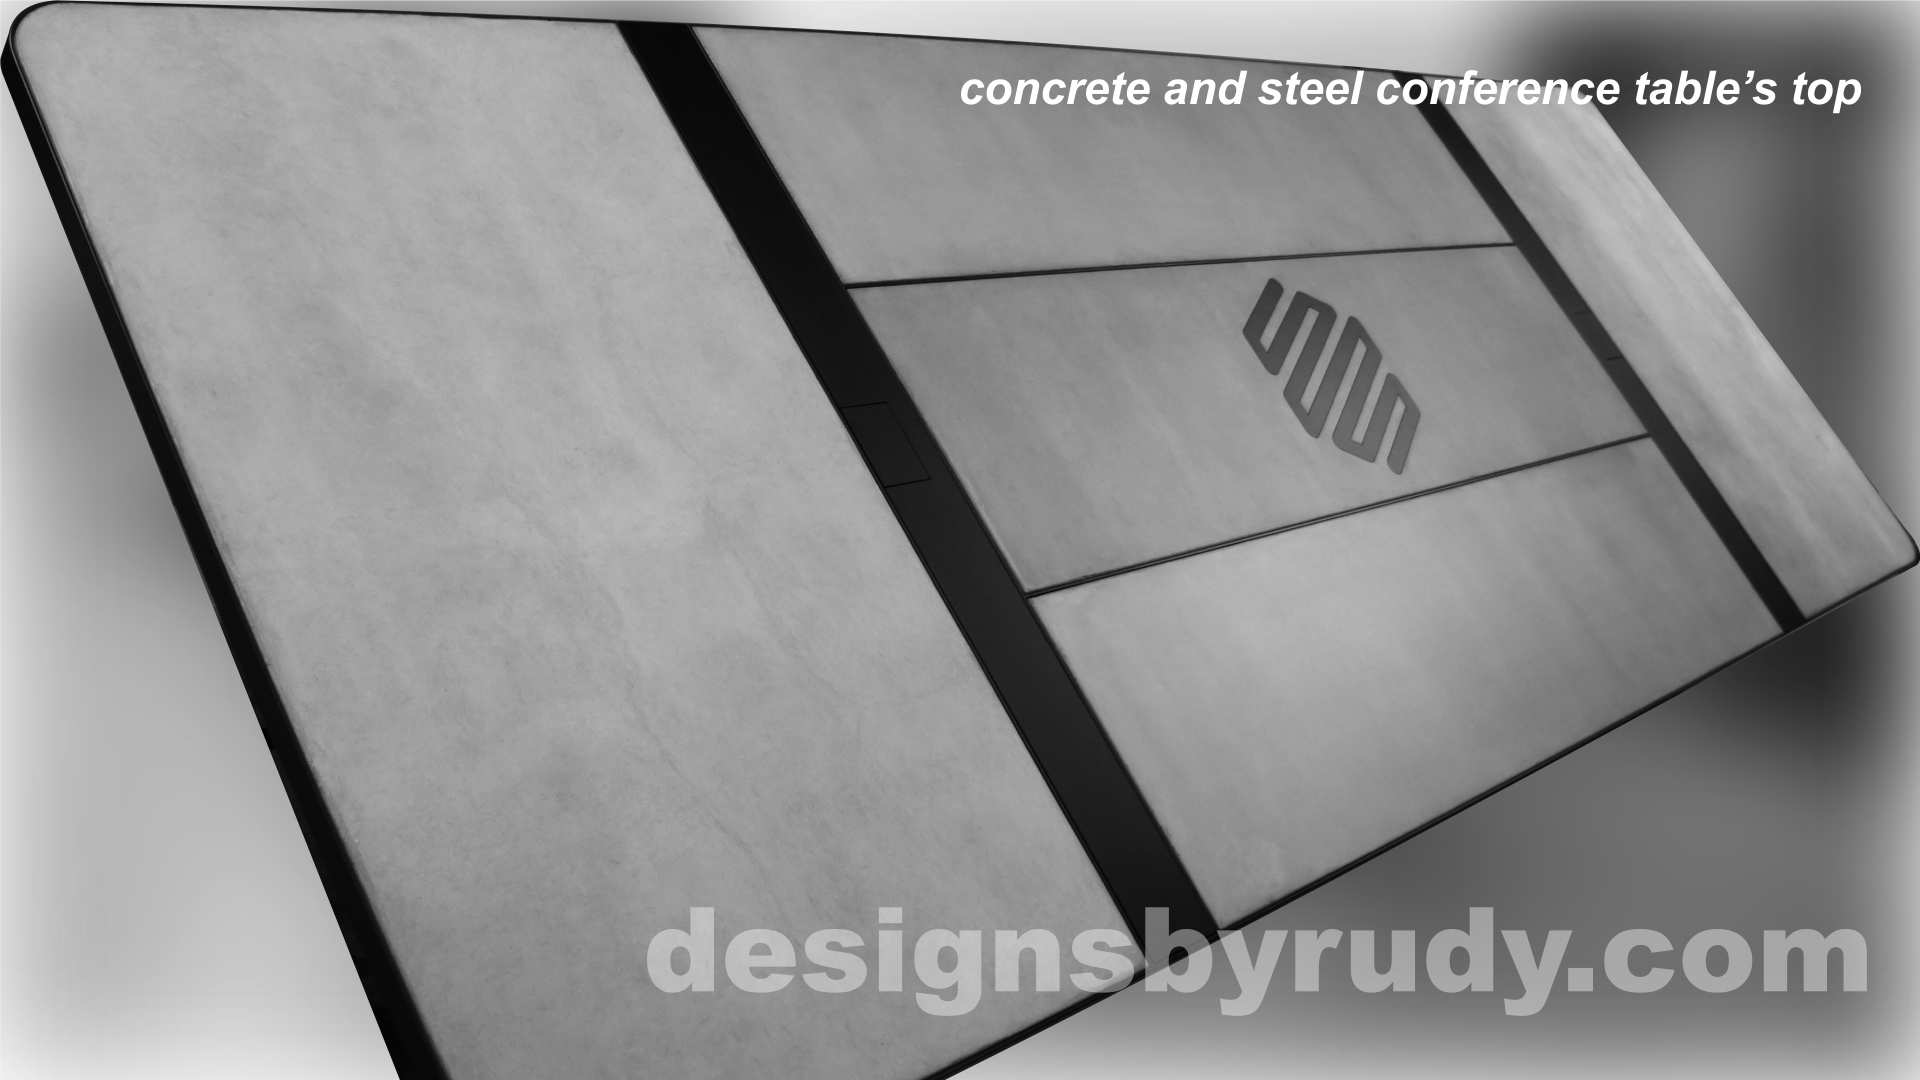 5 Concrete and Steel Conference Room Table for Markforged top view Designs by Rudy